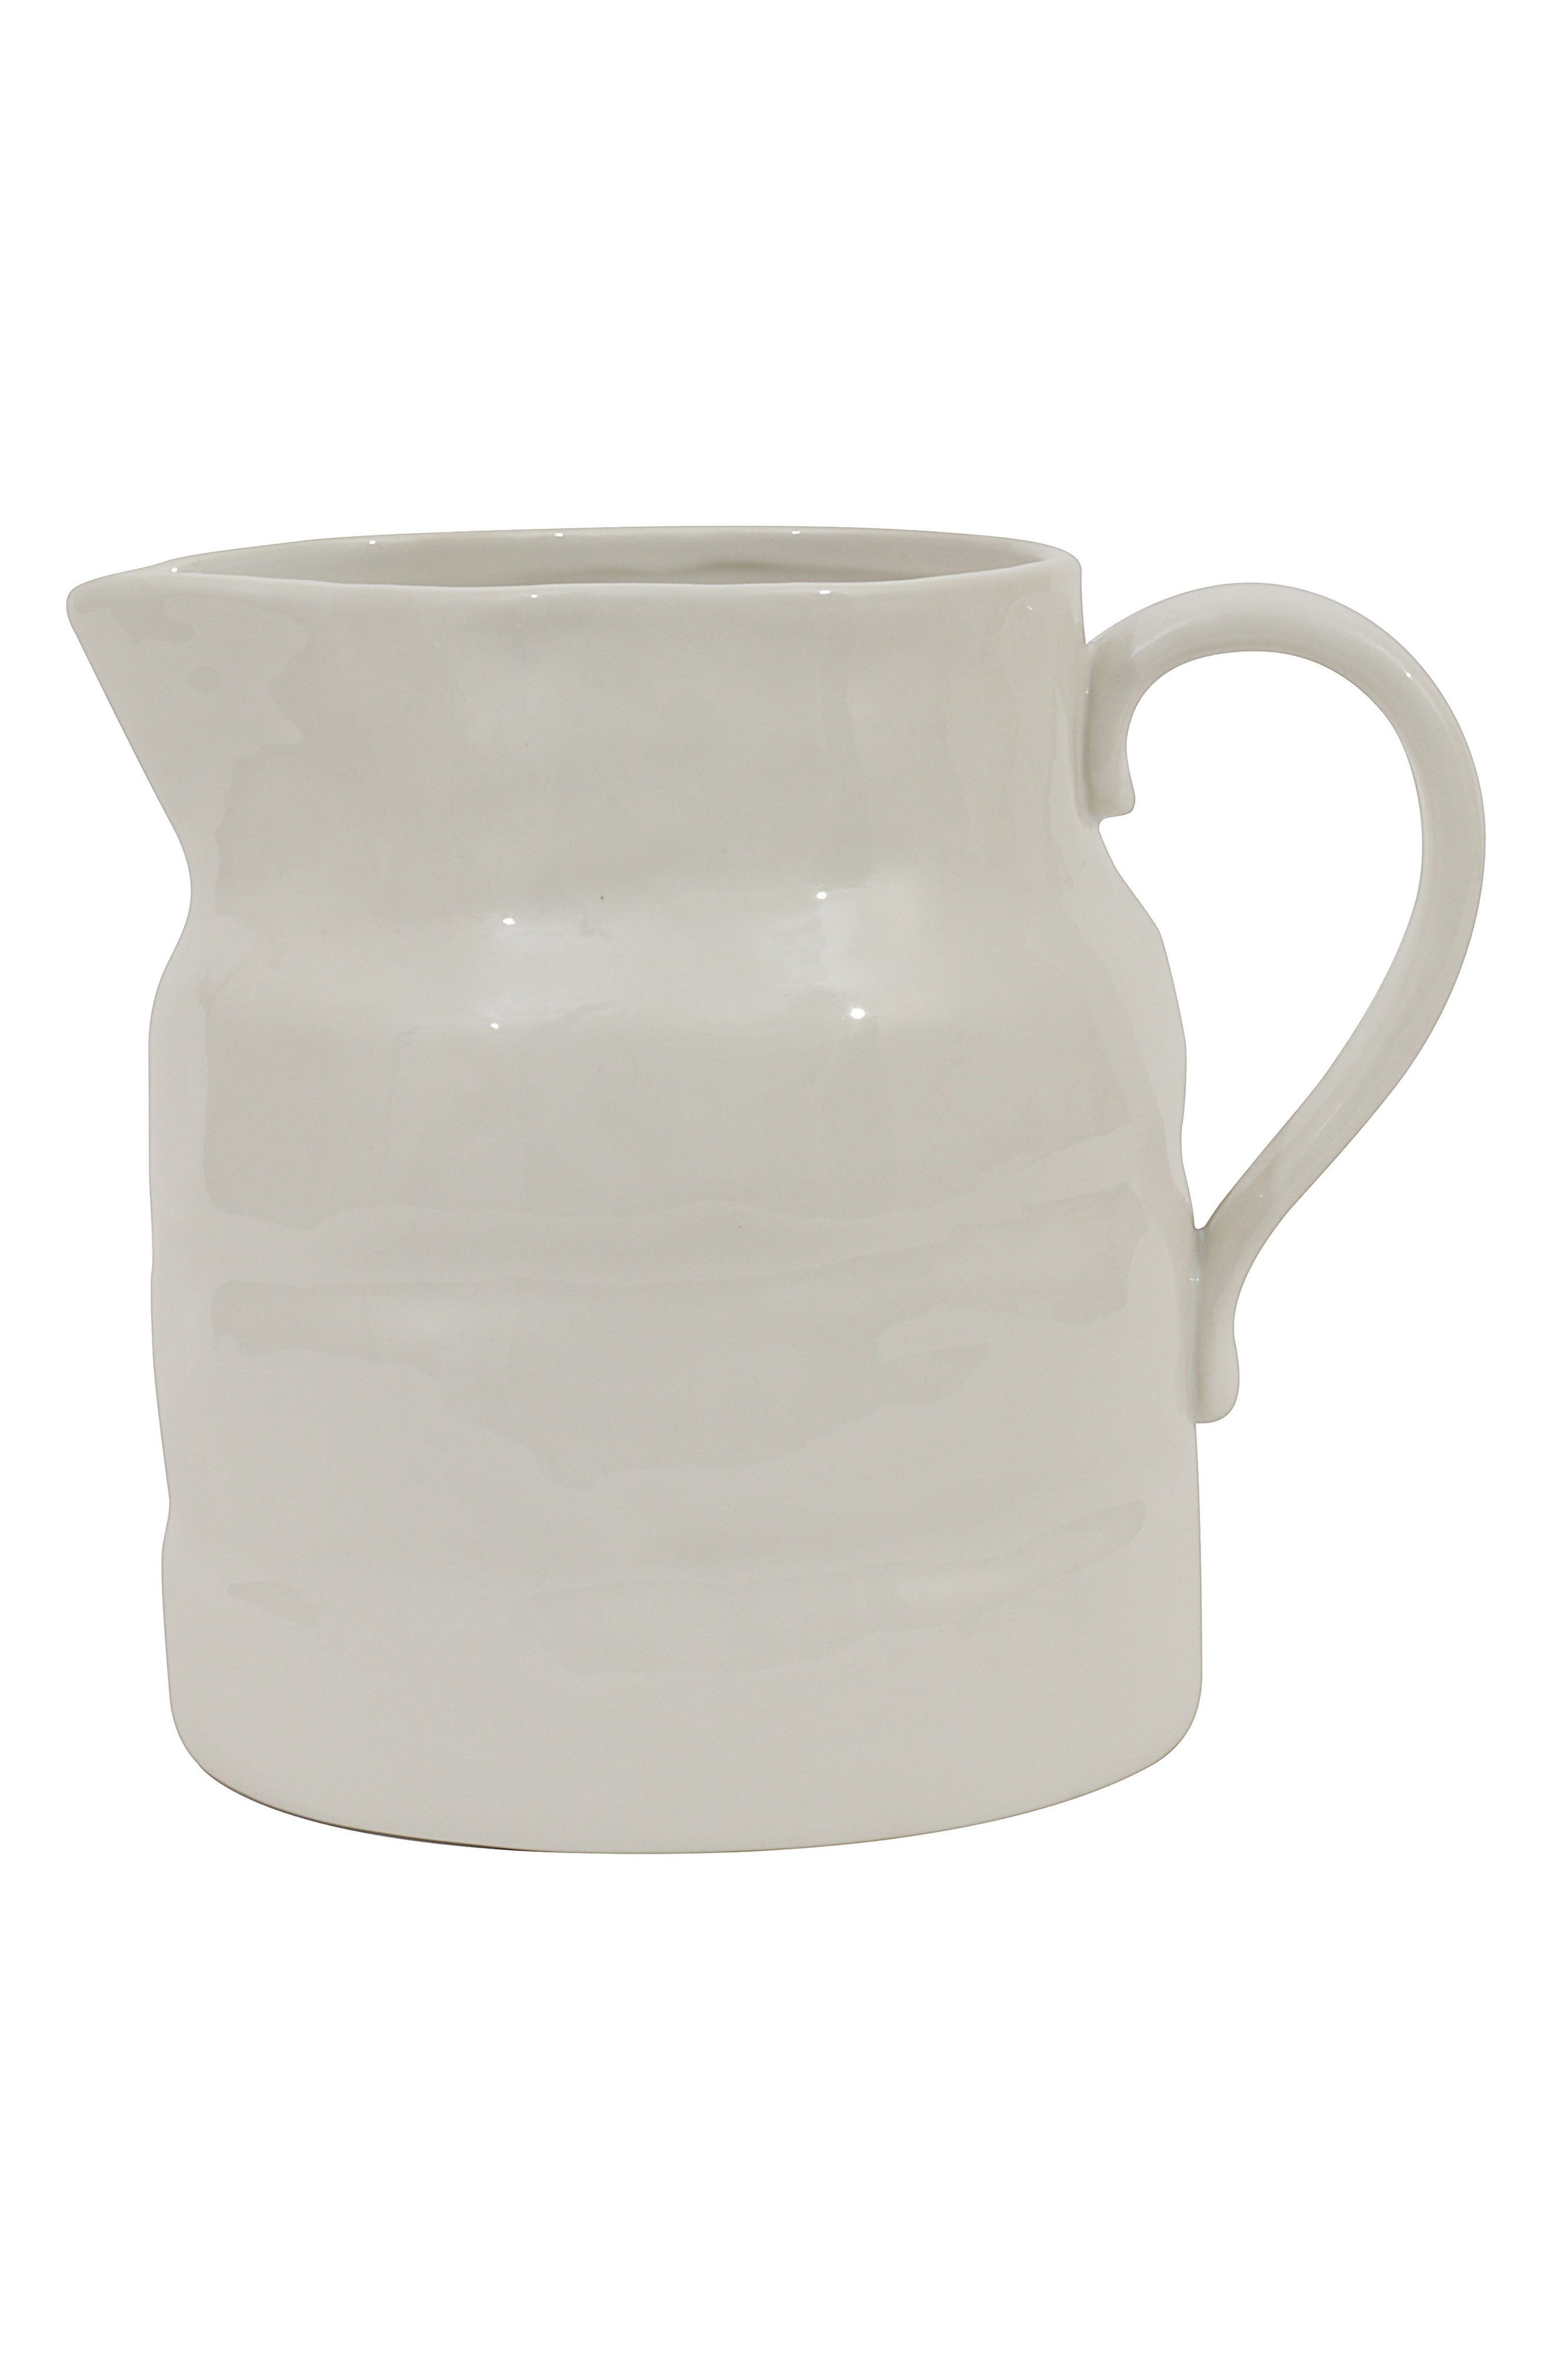 Large Ceramic Pitcher,                         Main,                         color, 100